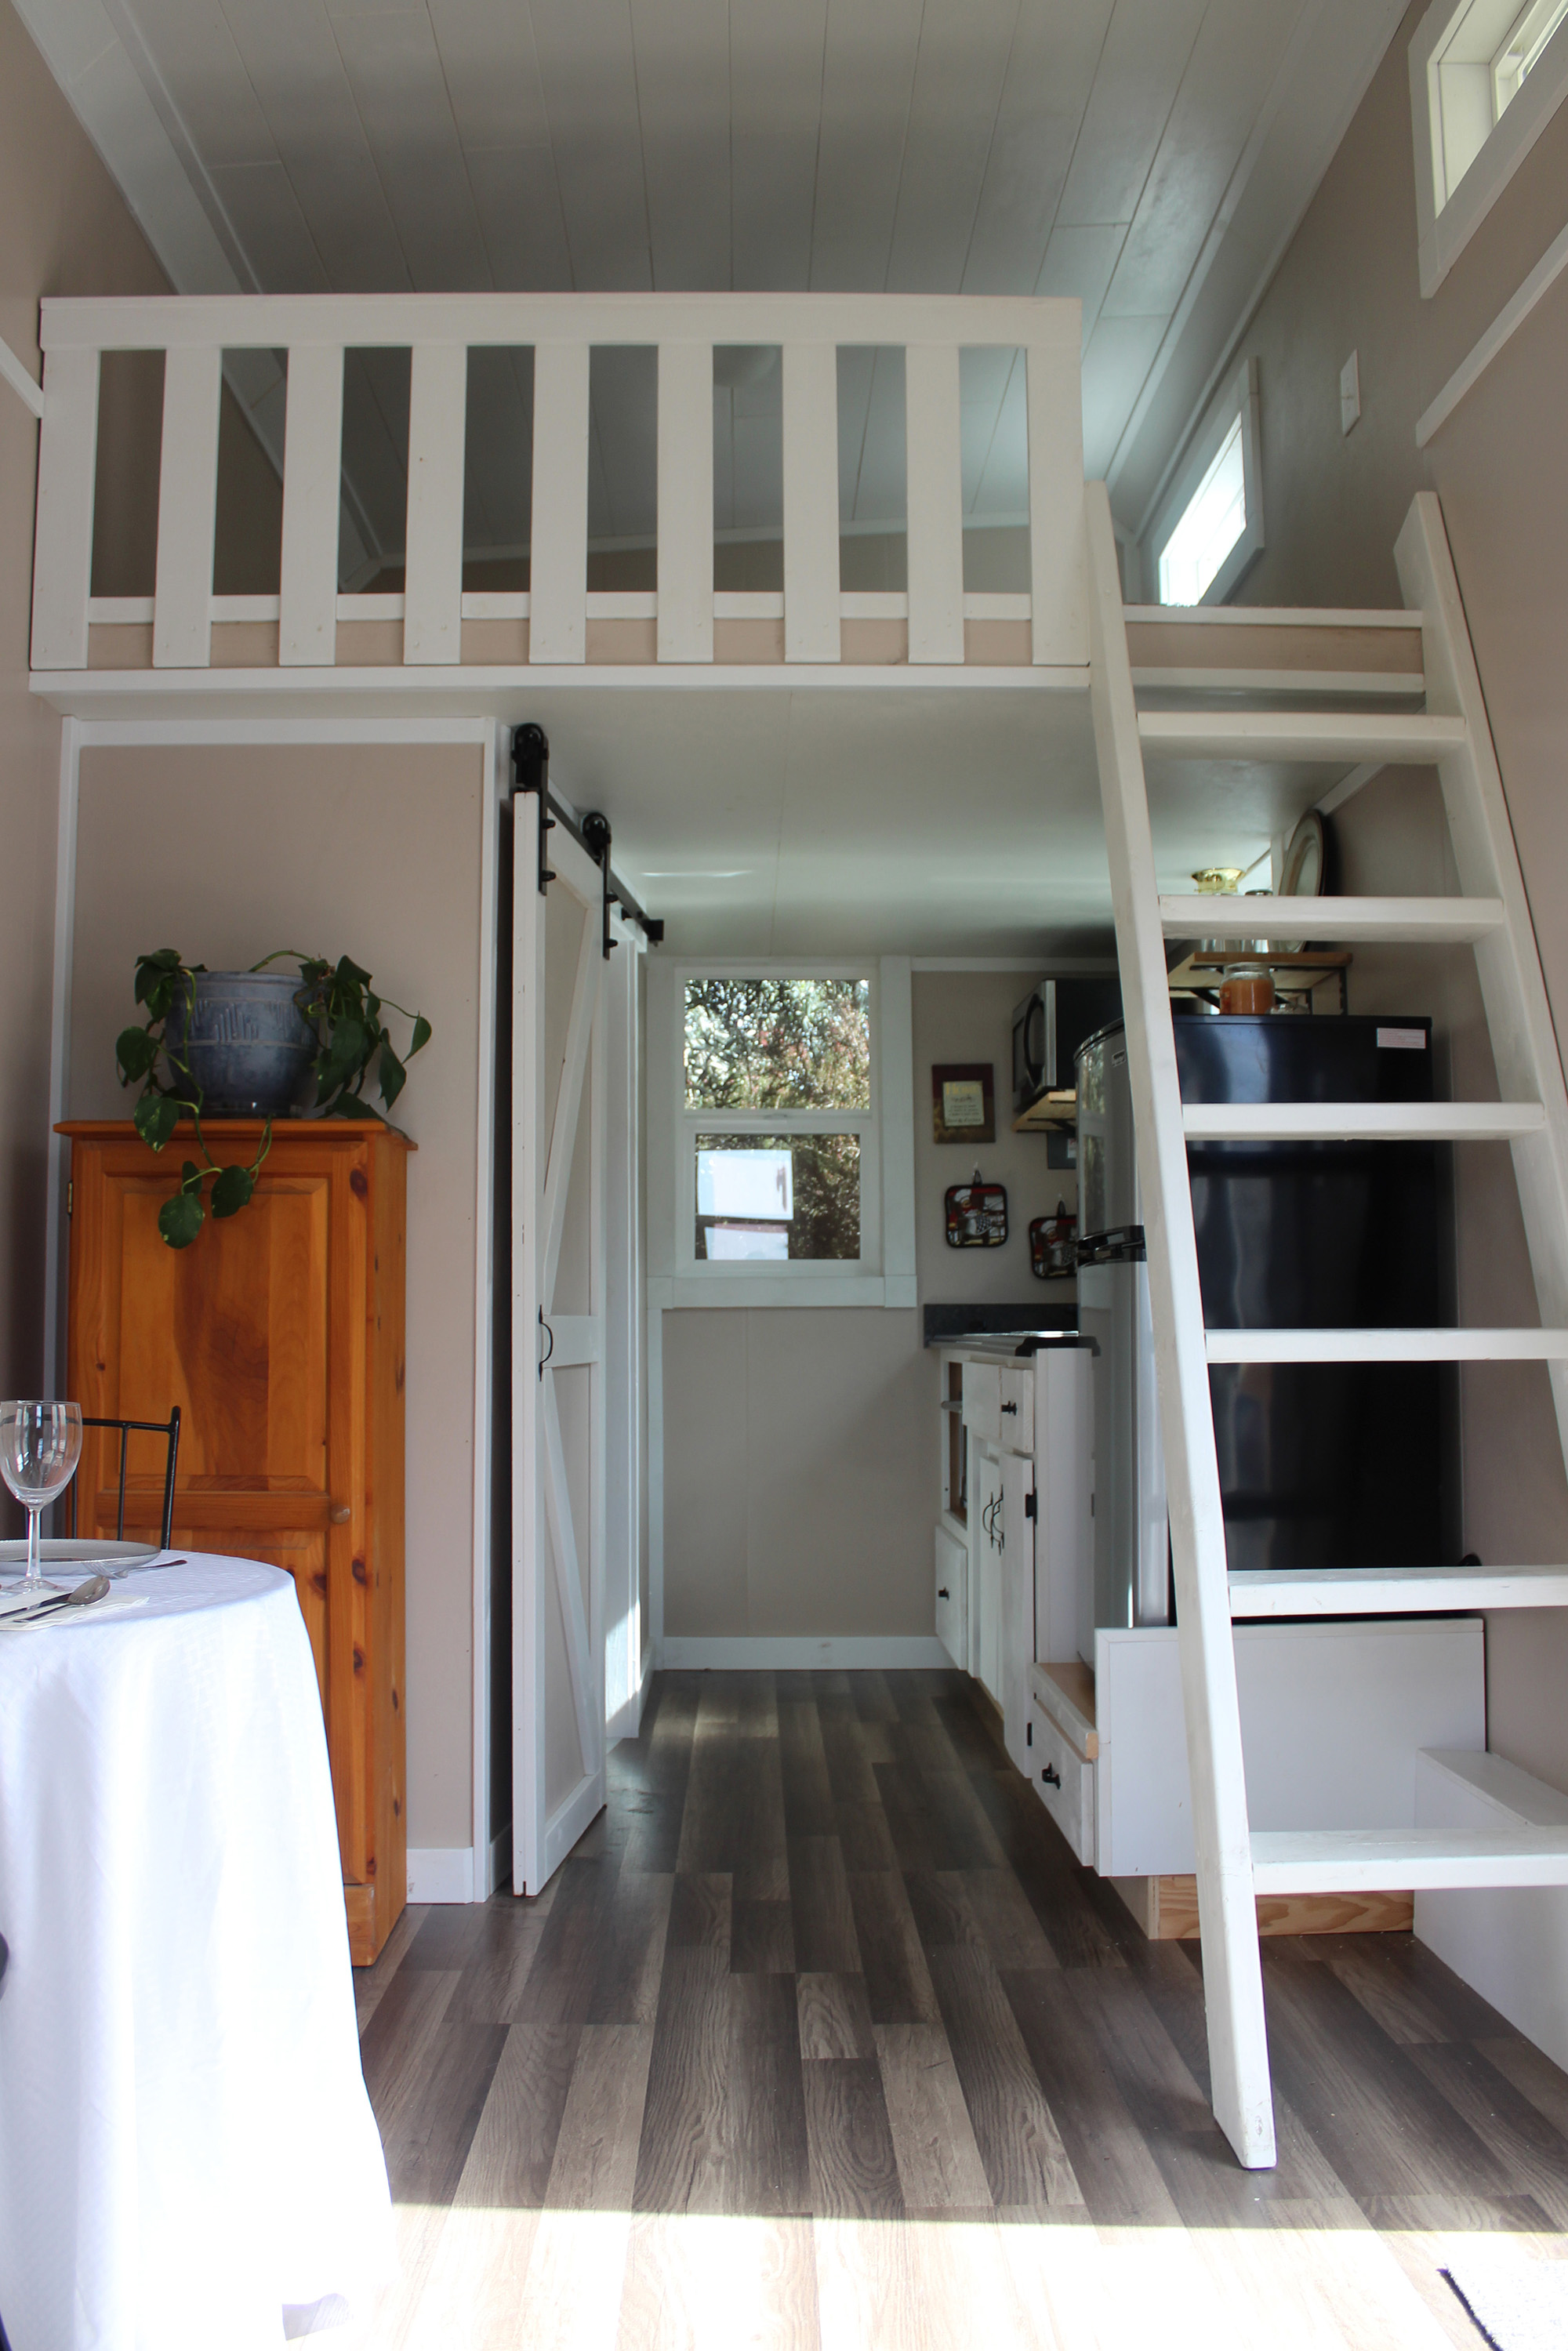 Brand New Tiny House In Santa Rosa Being Raffled Off For